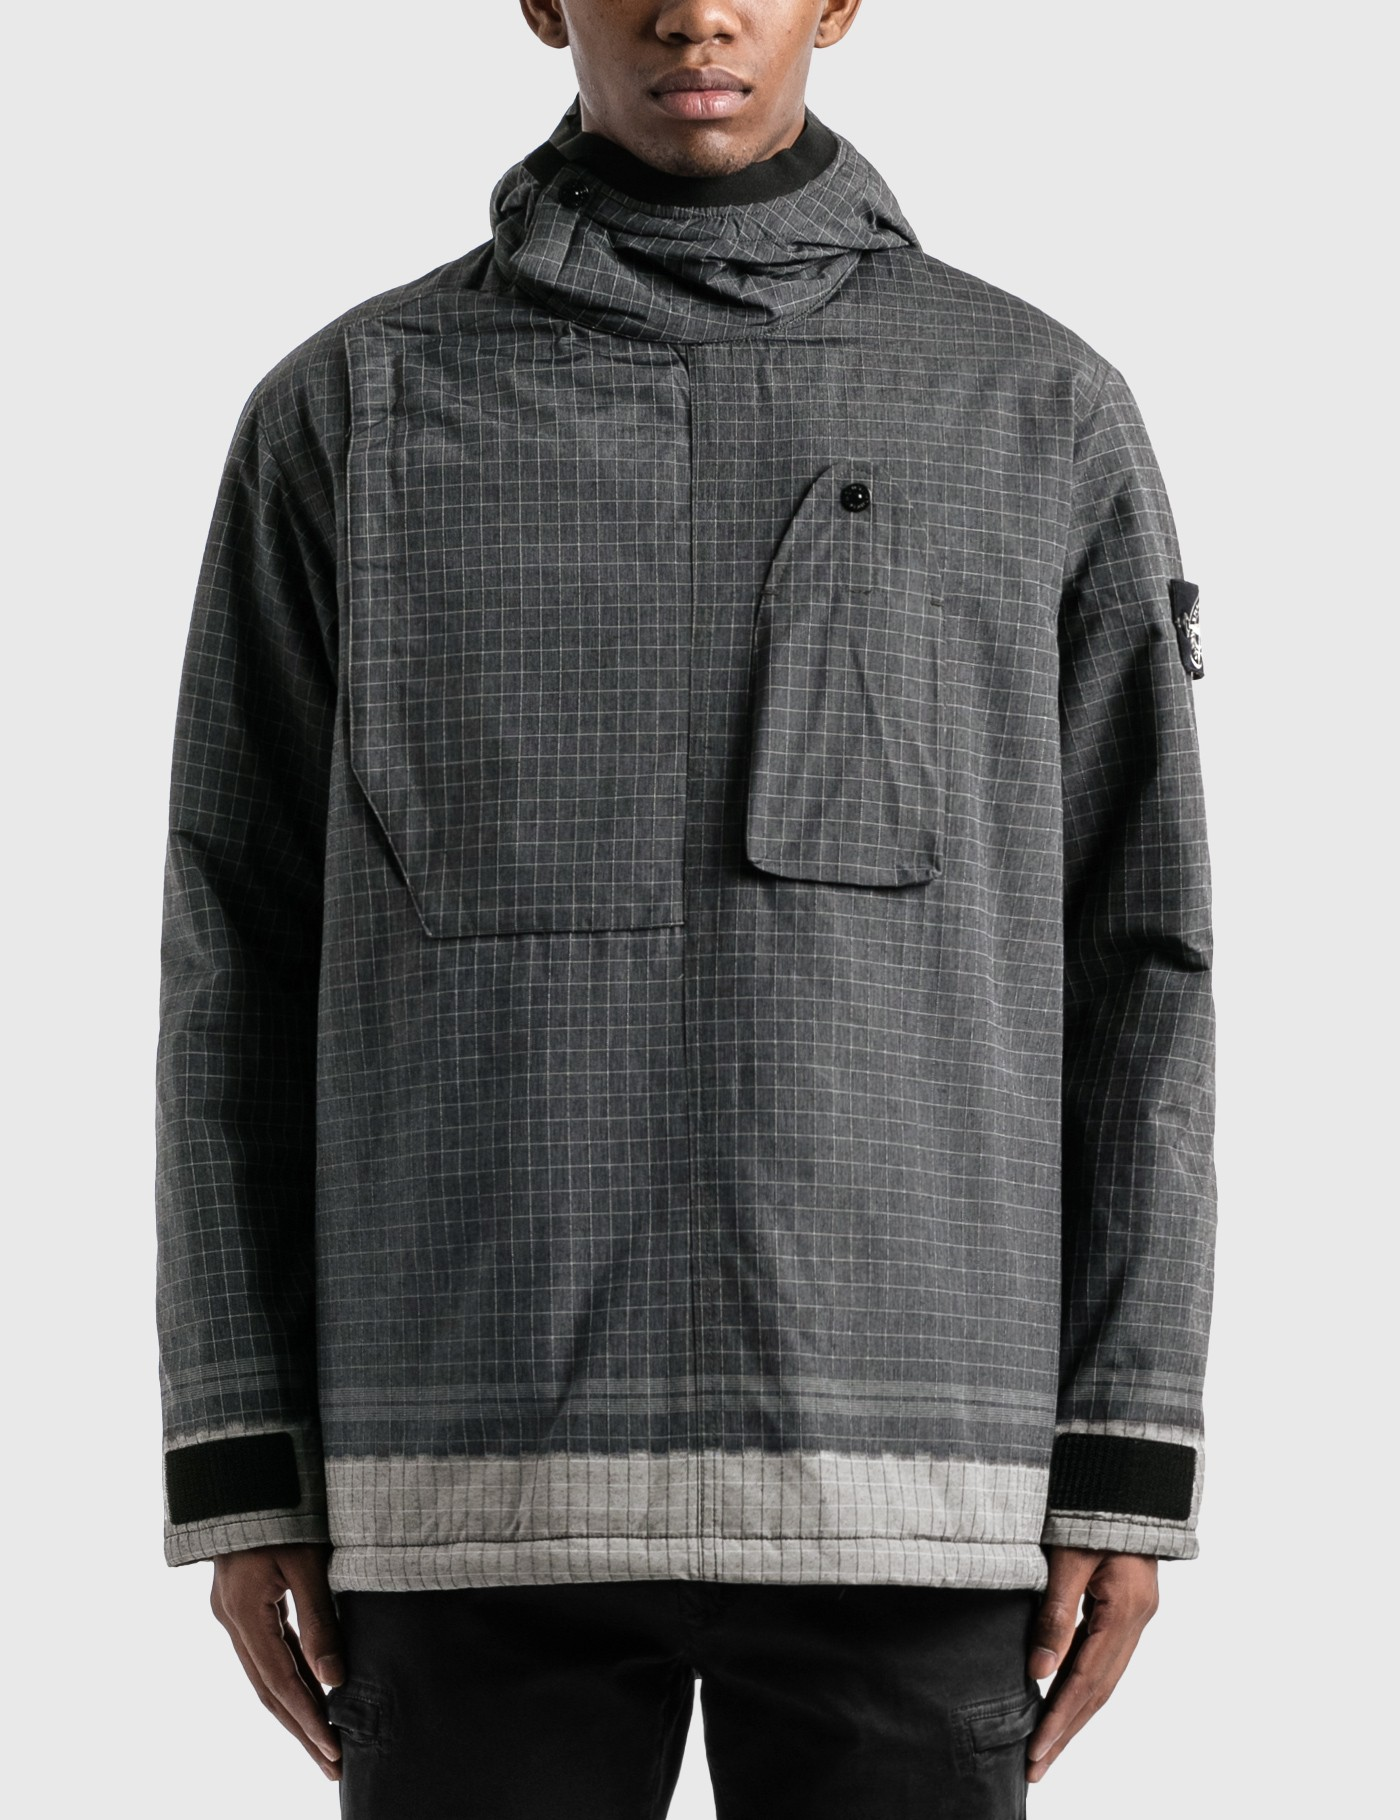 Reflective Pullover